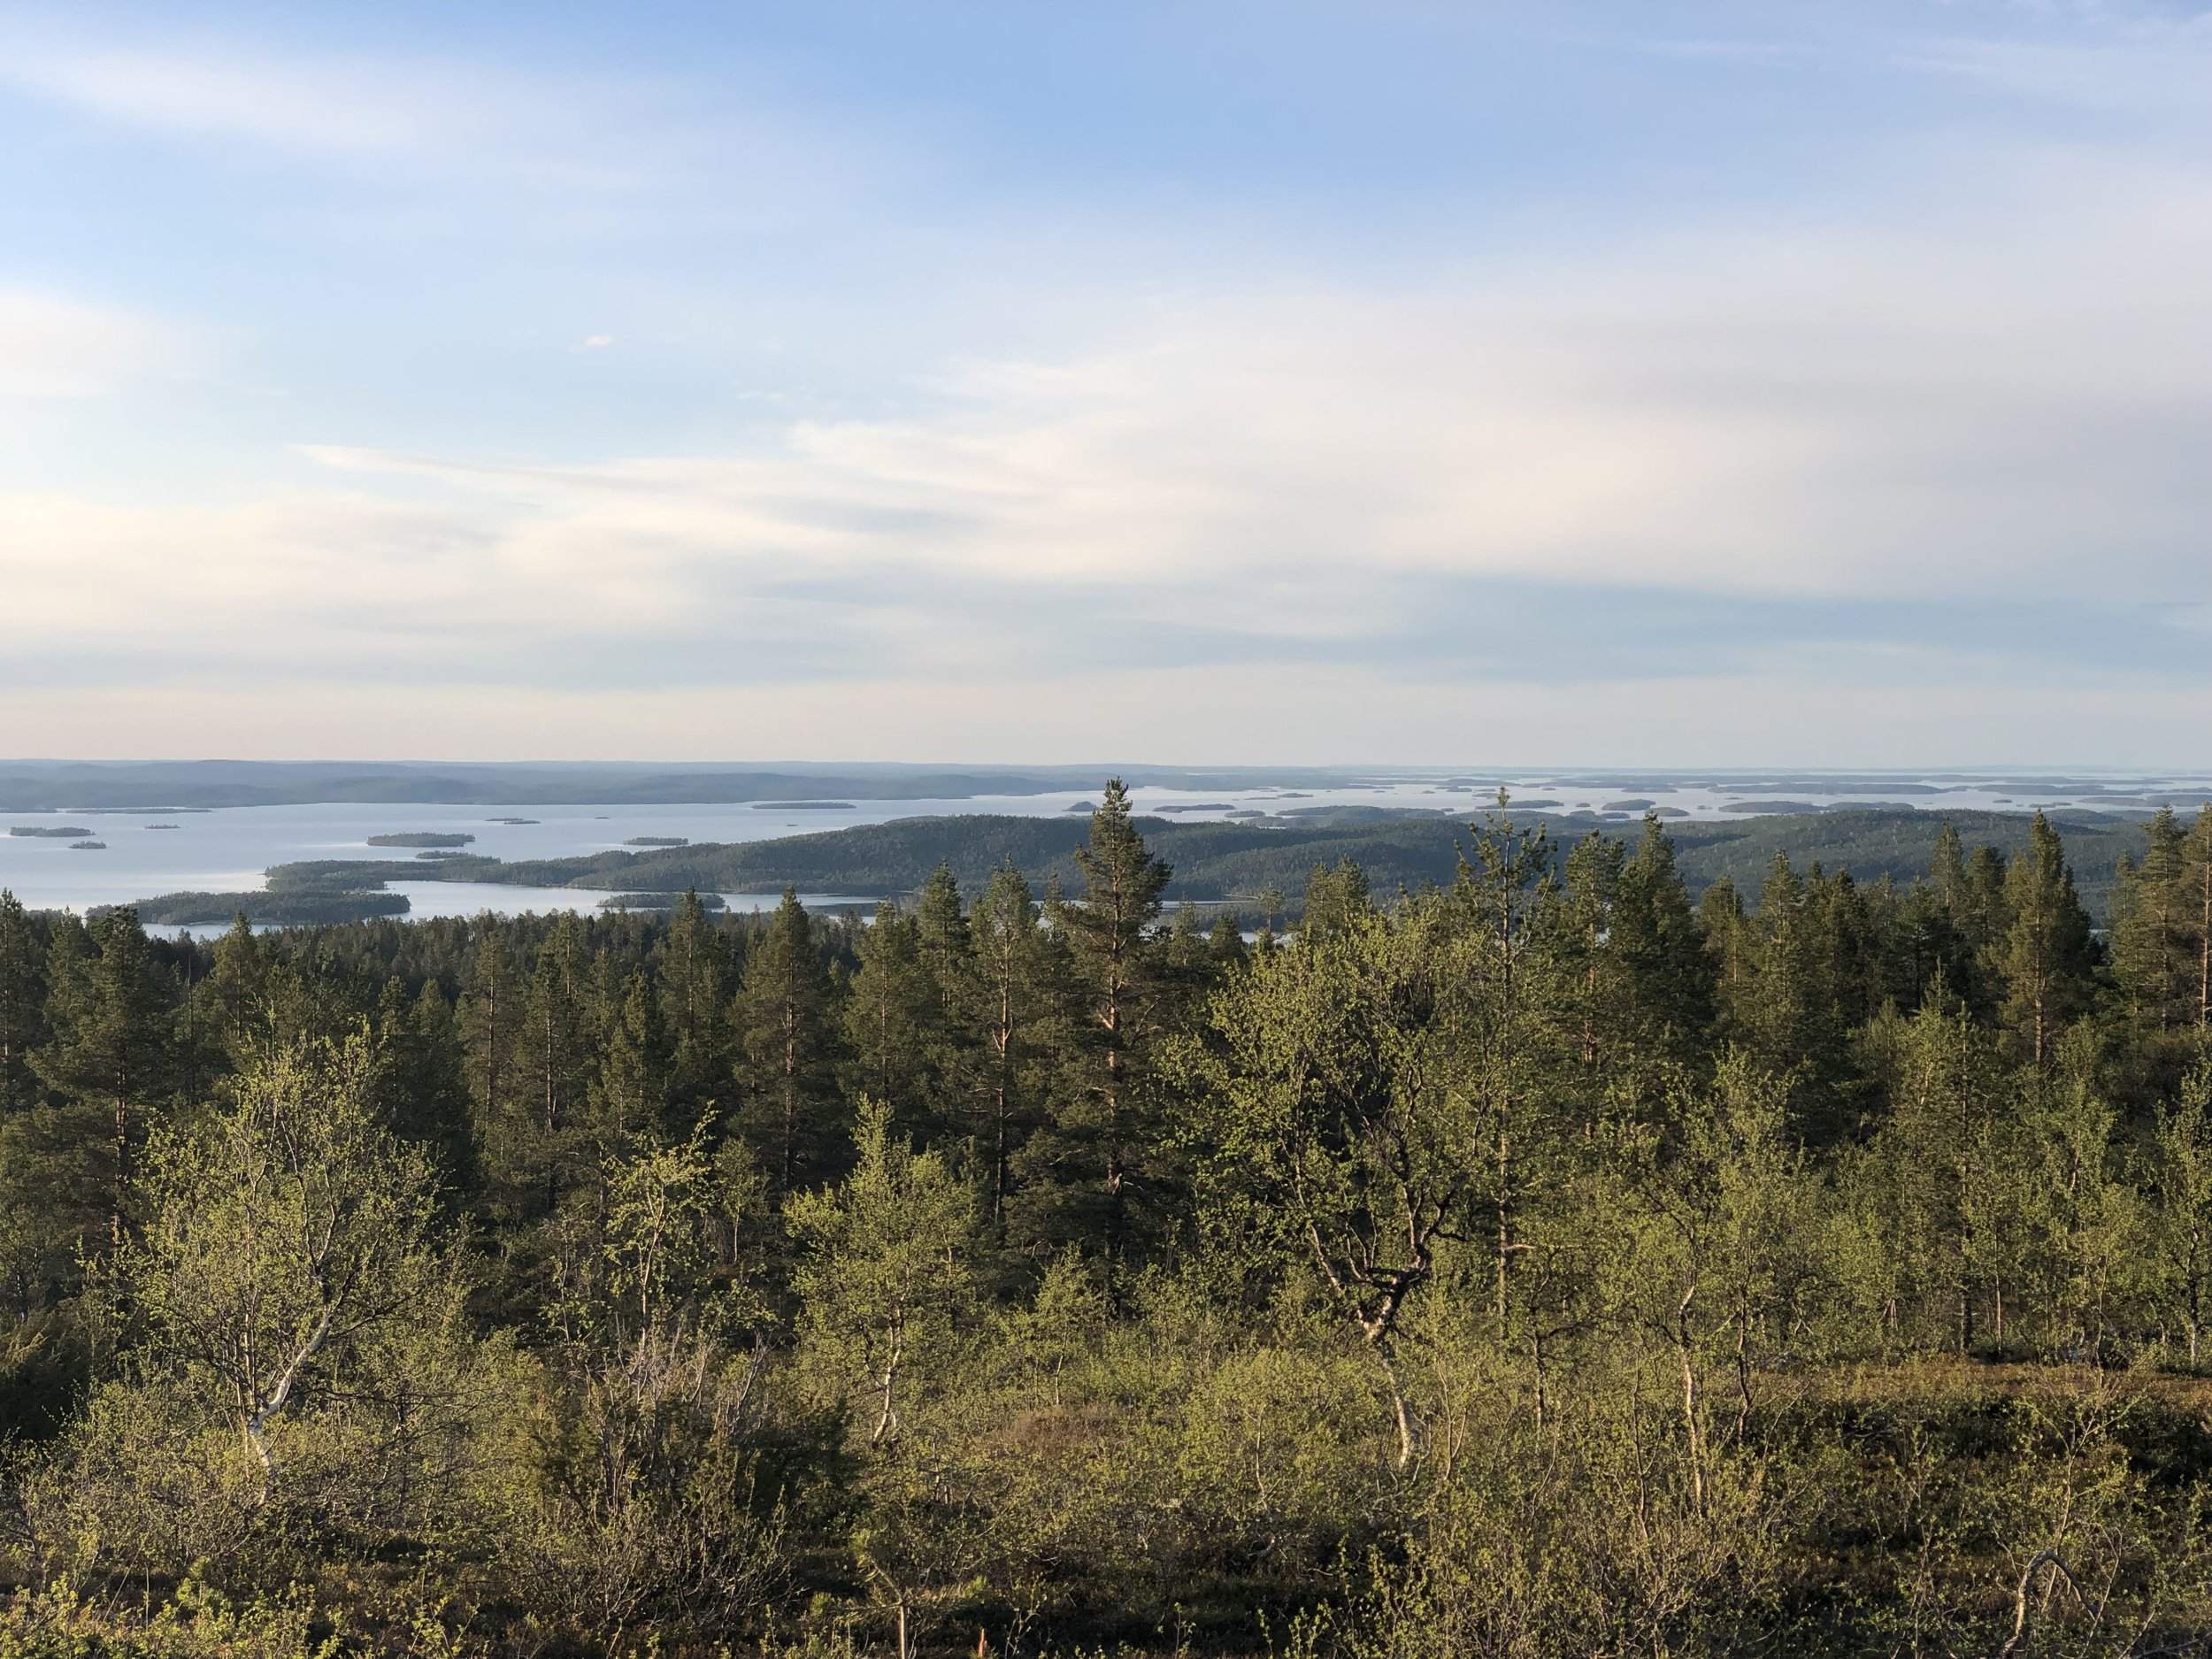 View of Lake Inari in Northern Finland.